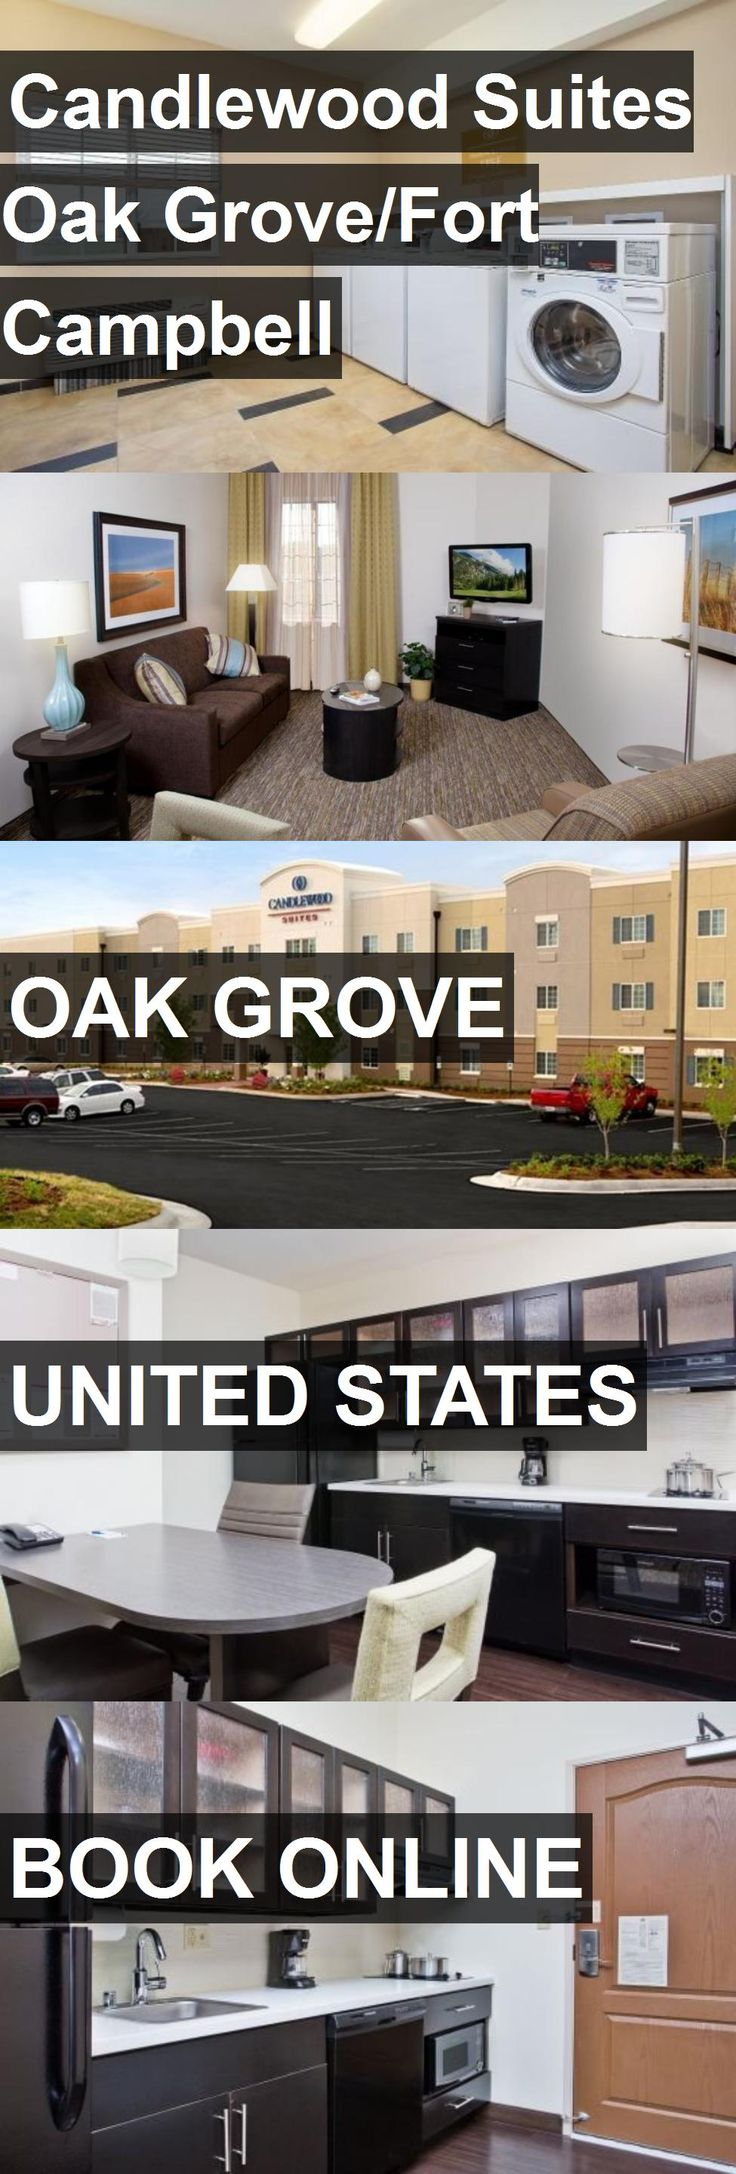 Hotel Candlewood Suites Oak Grove/Fort Campbell in Oak Grove, United States. For more information, photos, reviews and best prices please follow the link. #UnitedStates #OakGrove #travel #vacation #hotel